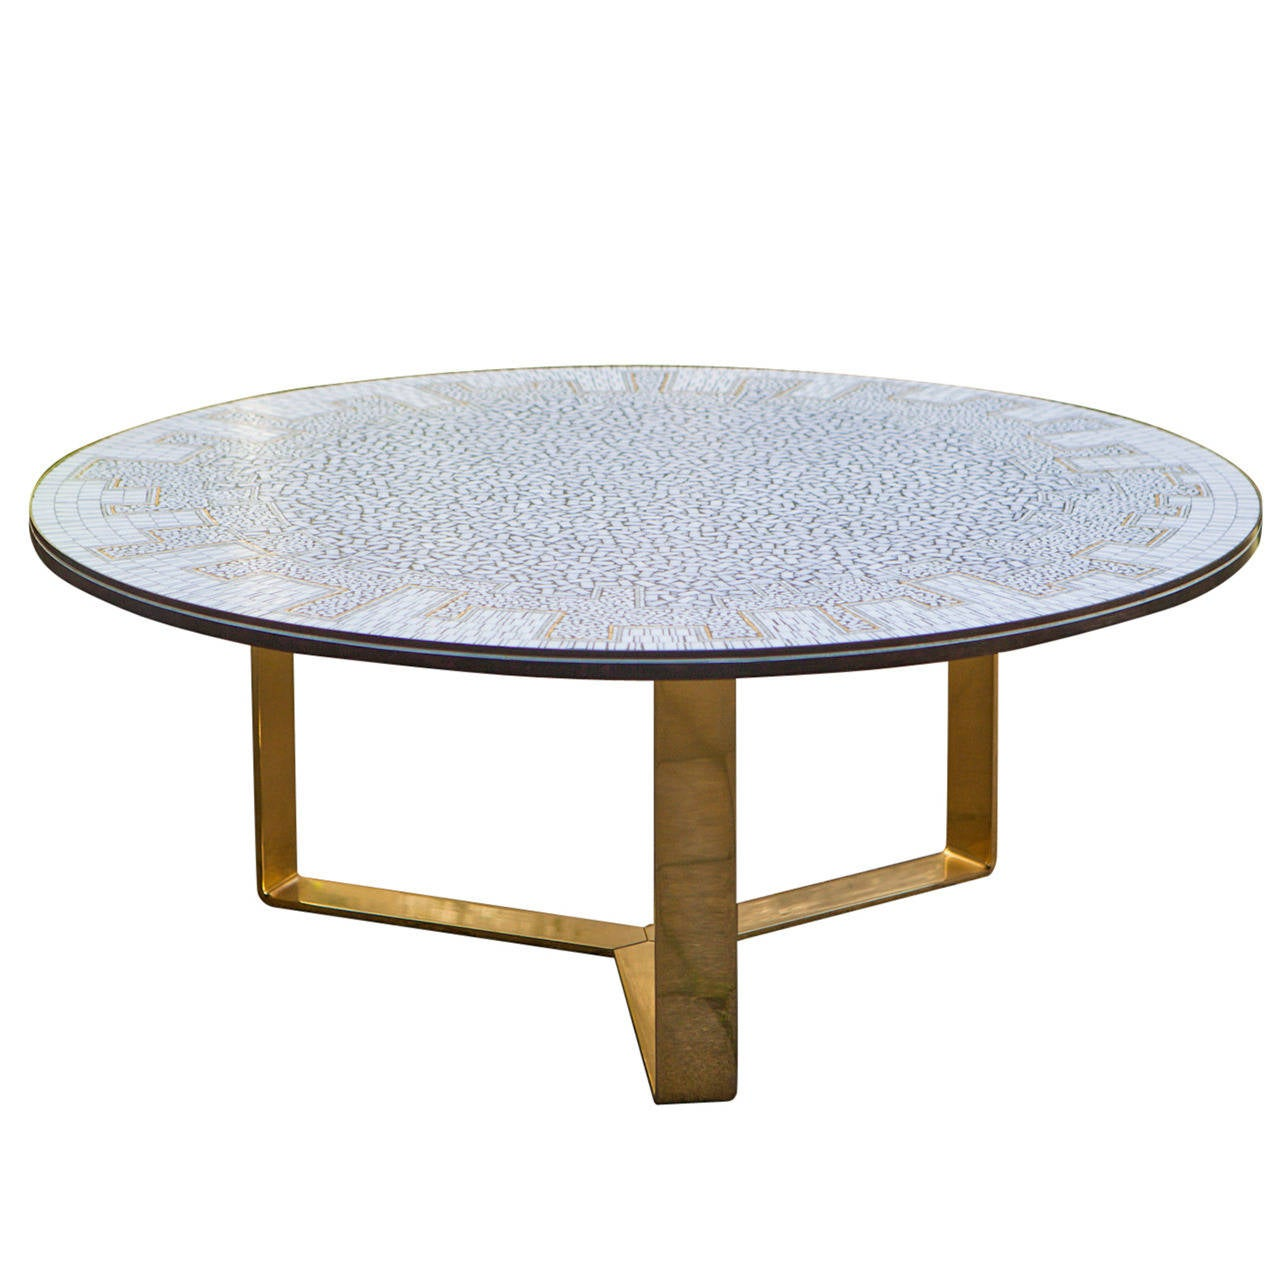 Impressive glass mosaic coffee table france 1970 at 1stdibs for Mosaic coffee table